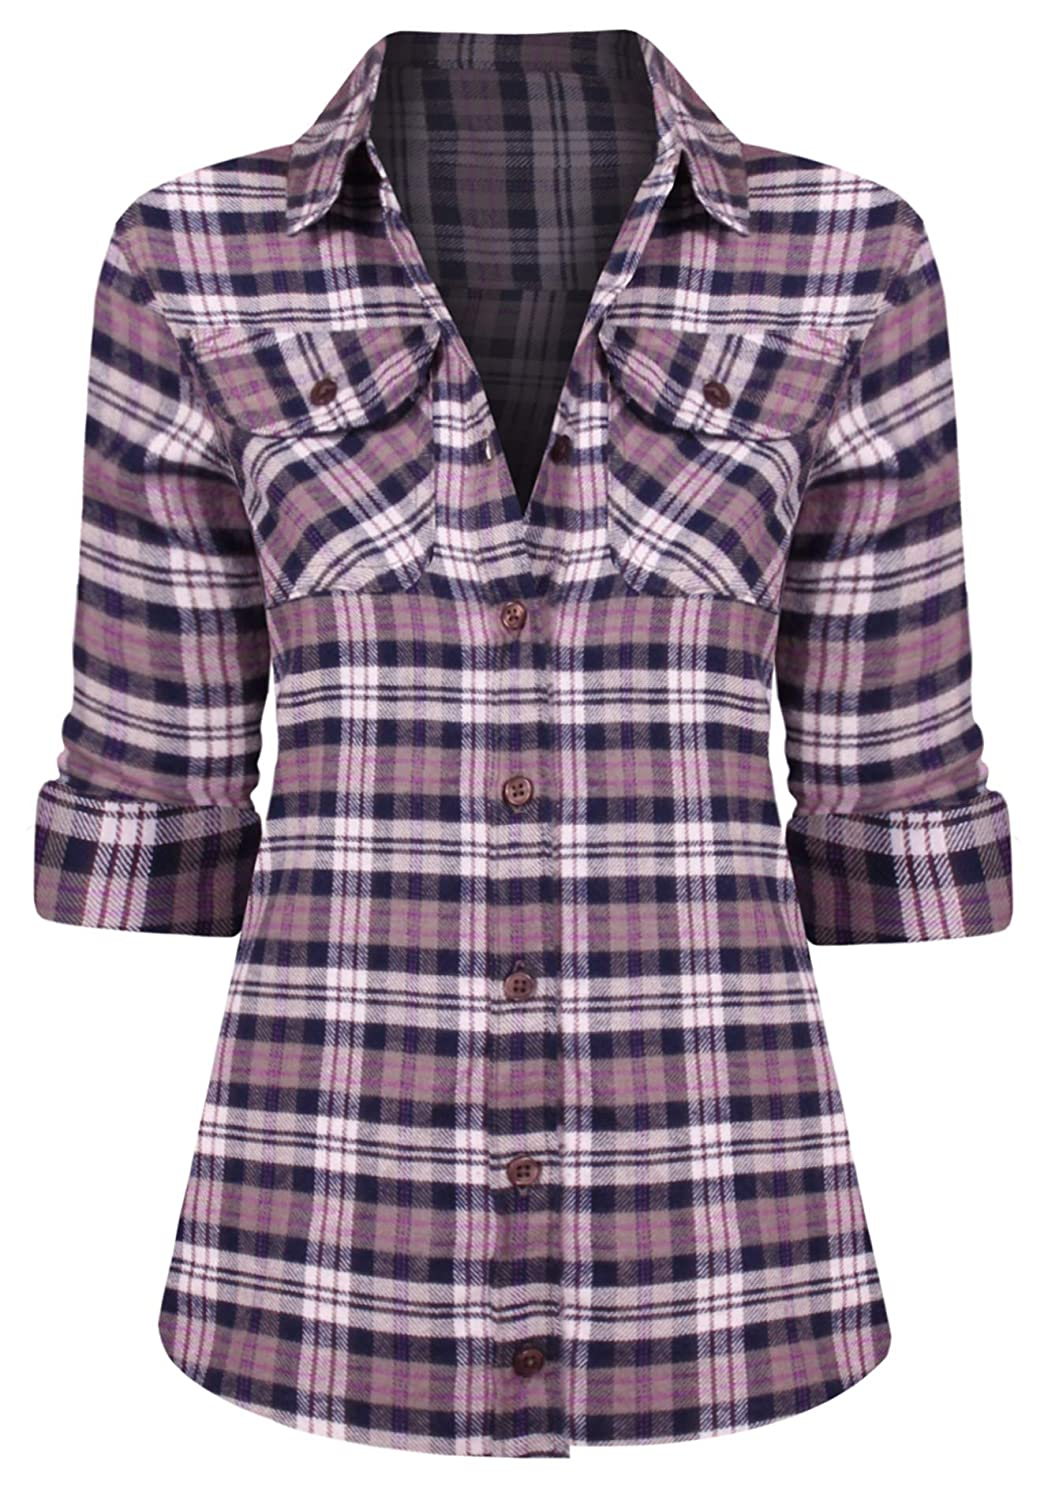 Hot From Hollywood Women's Long Sleeve Button Down Plaid Flannel Shirt EM-1000-TOP-EM-WMS